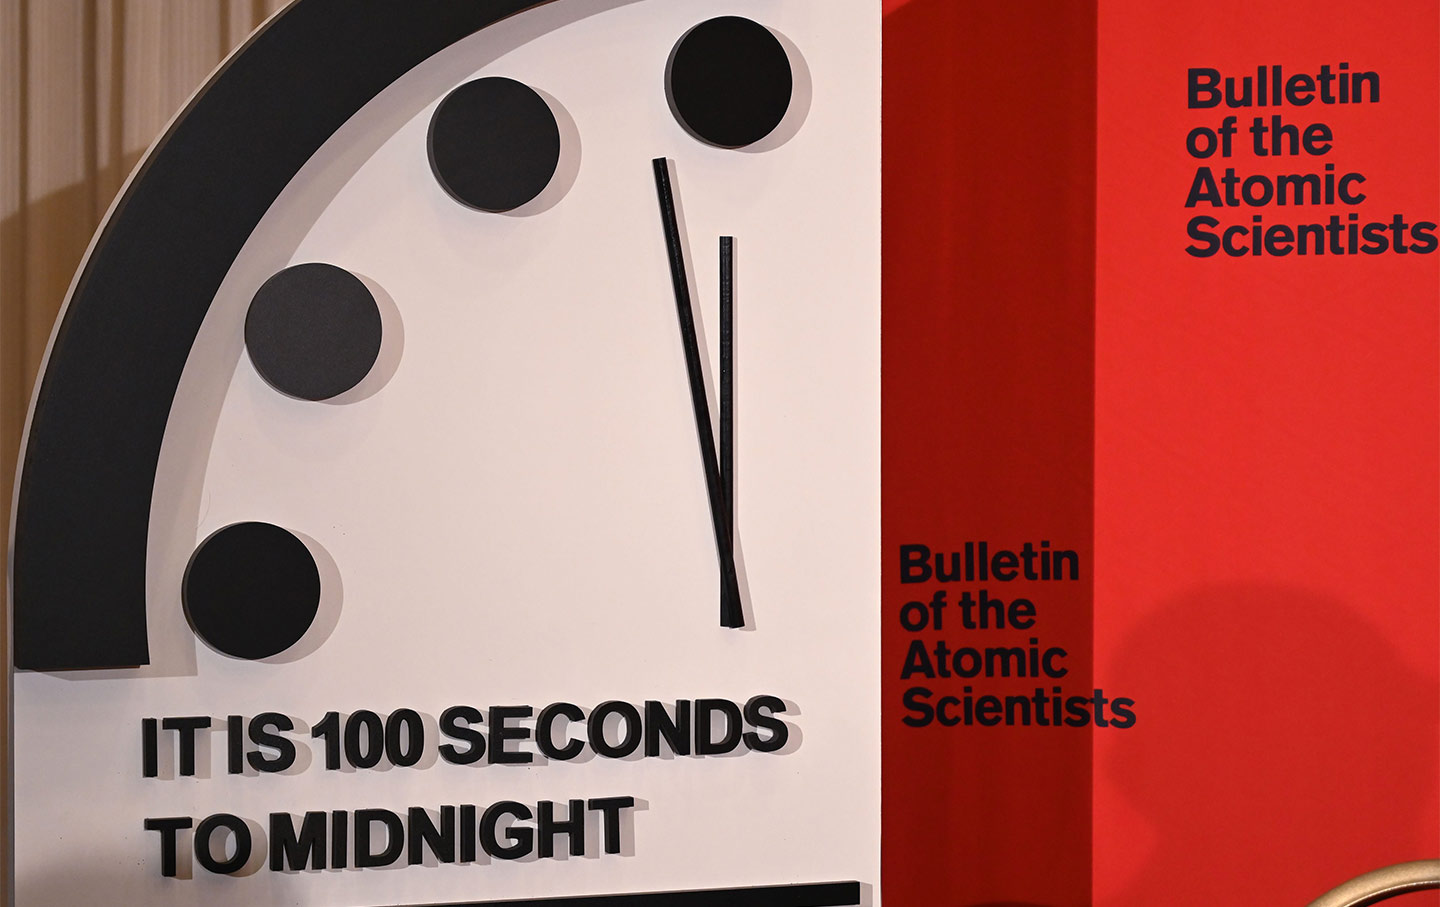 doomsday-clock-bulletin-atomic-scientists-gt-img